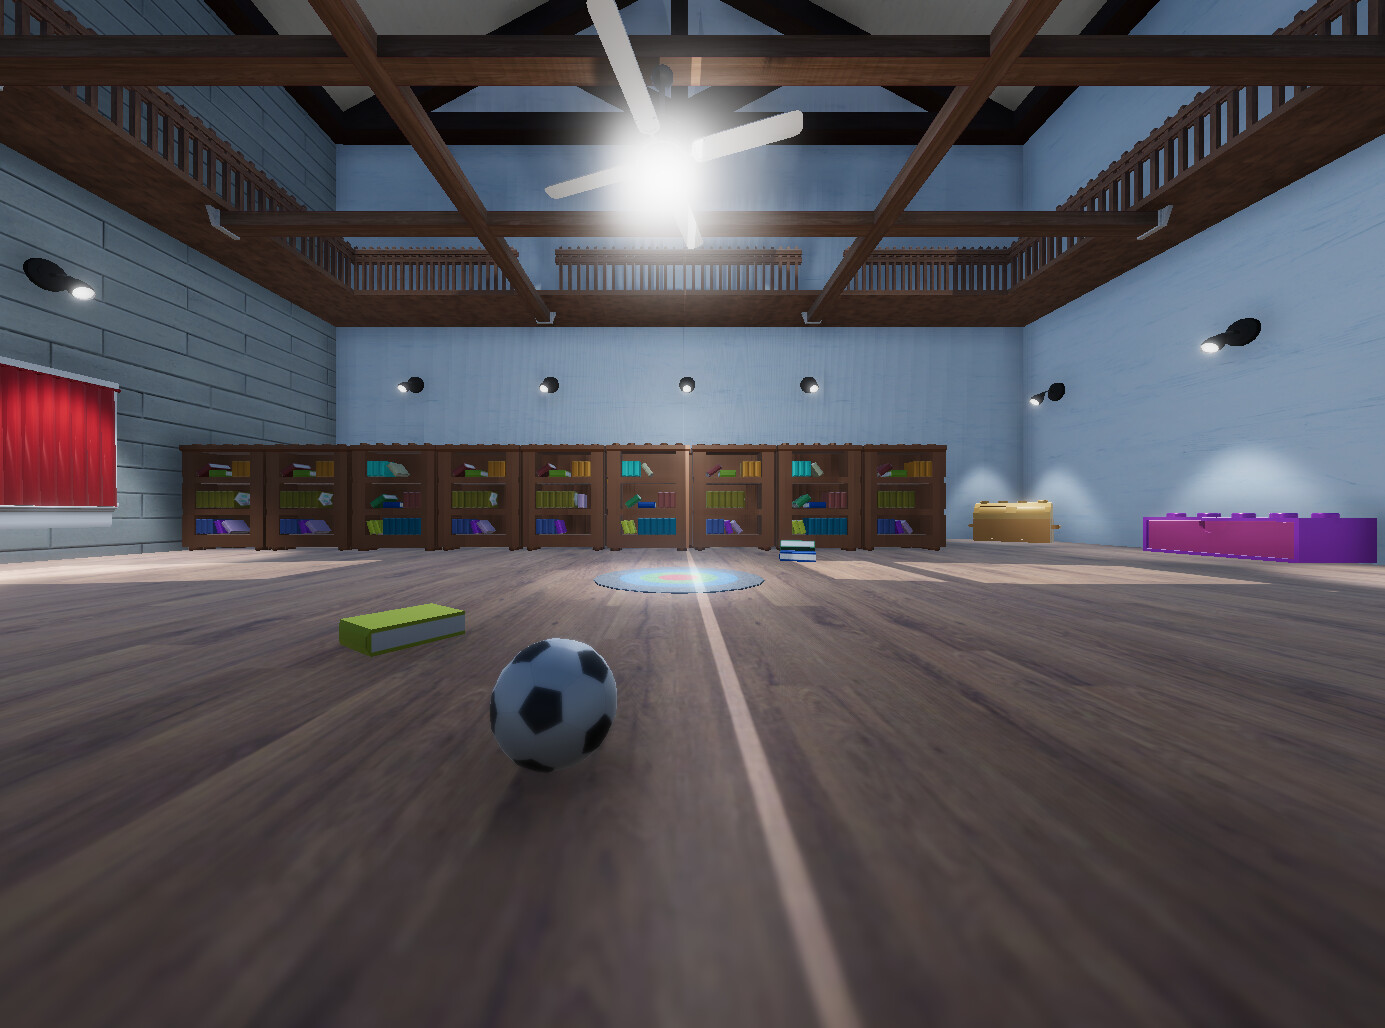 A close up of the flooring and my soccer ball.